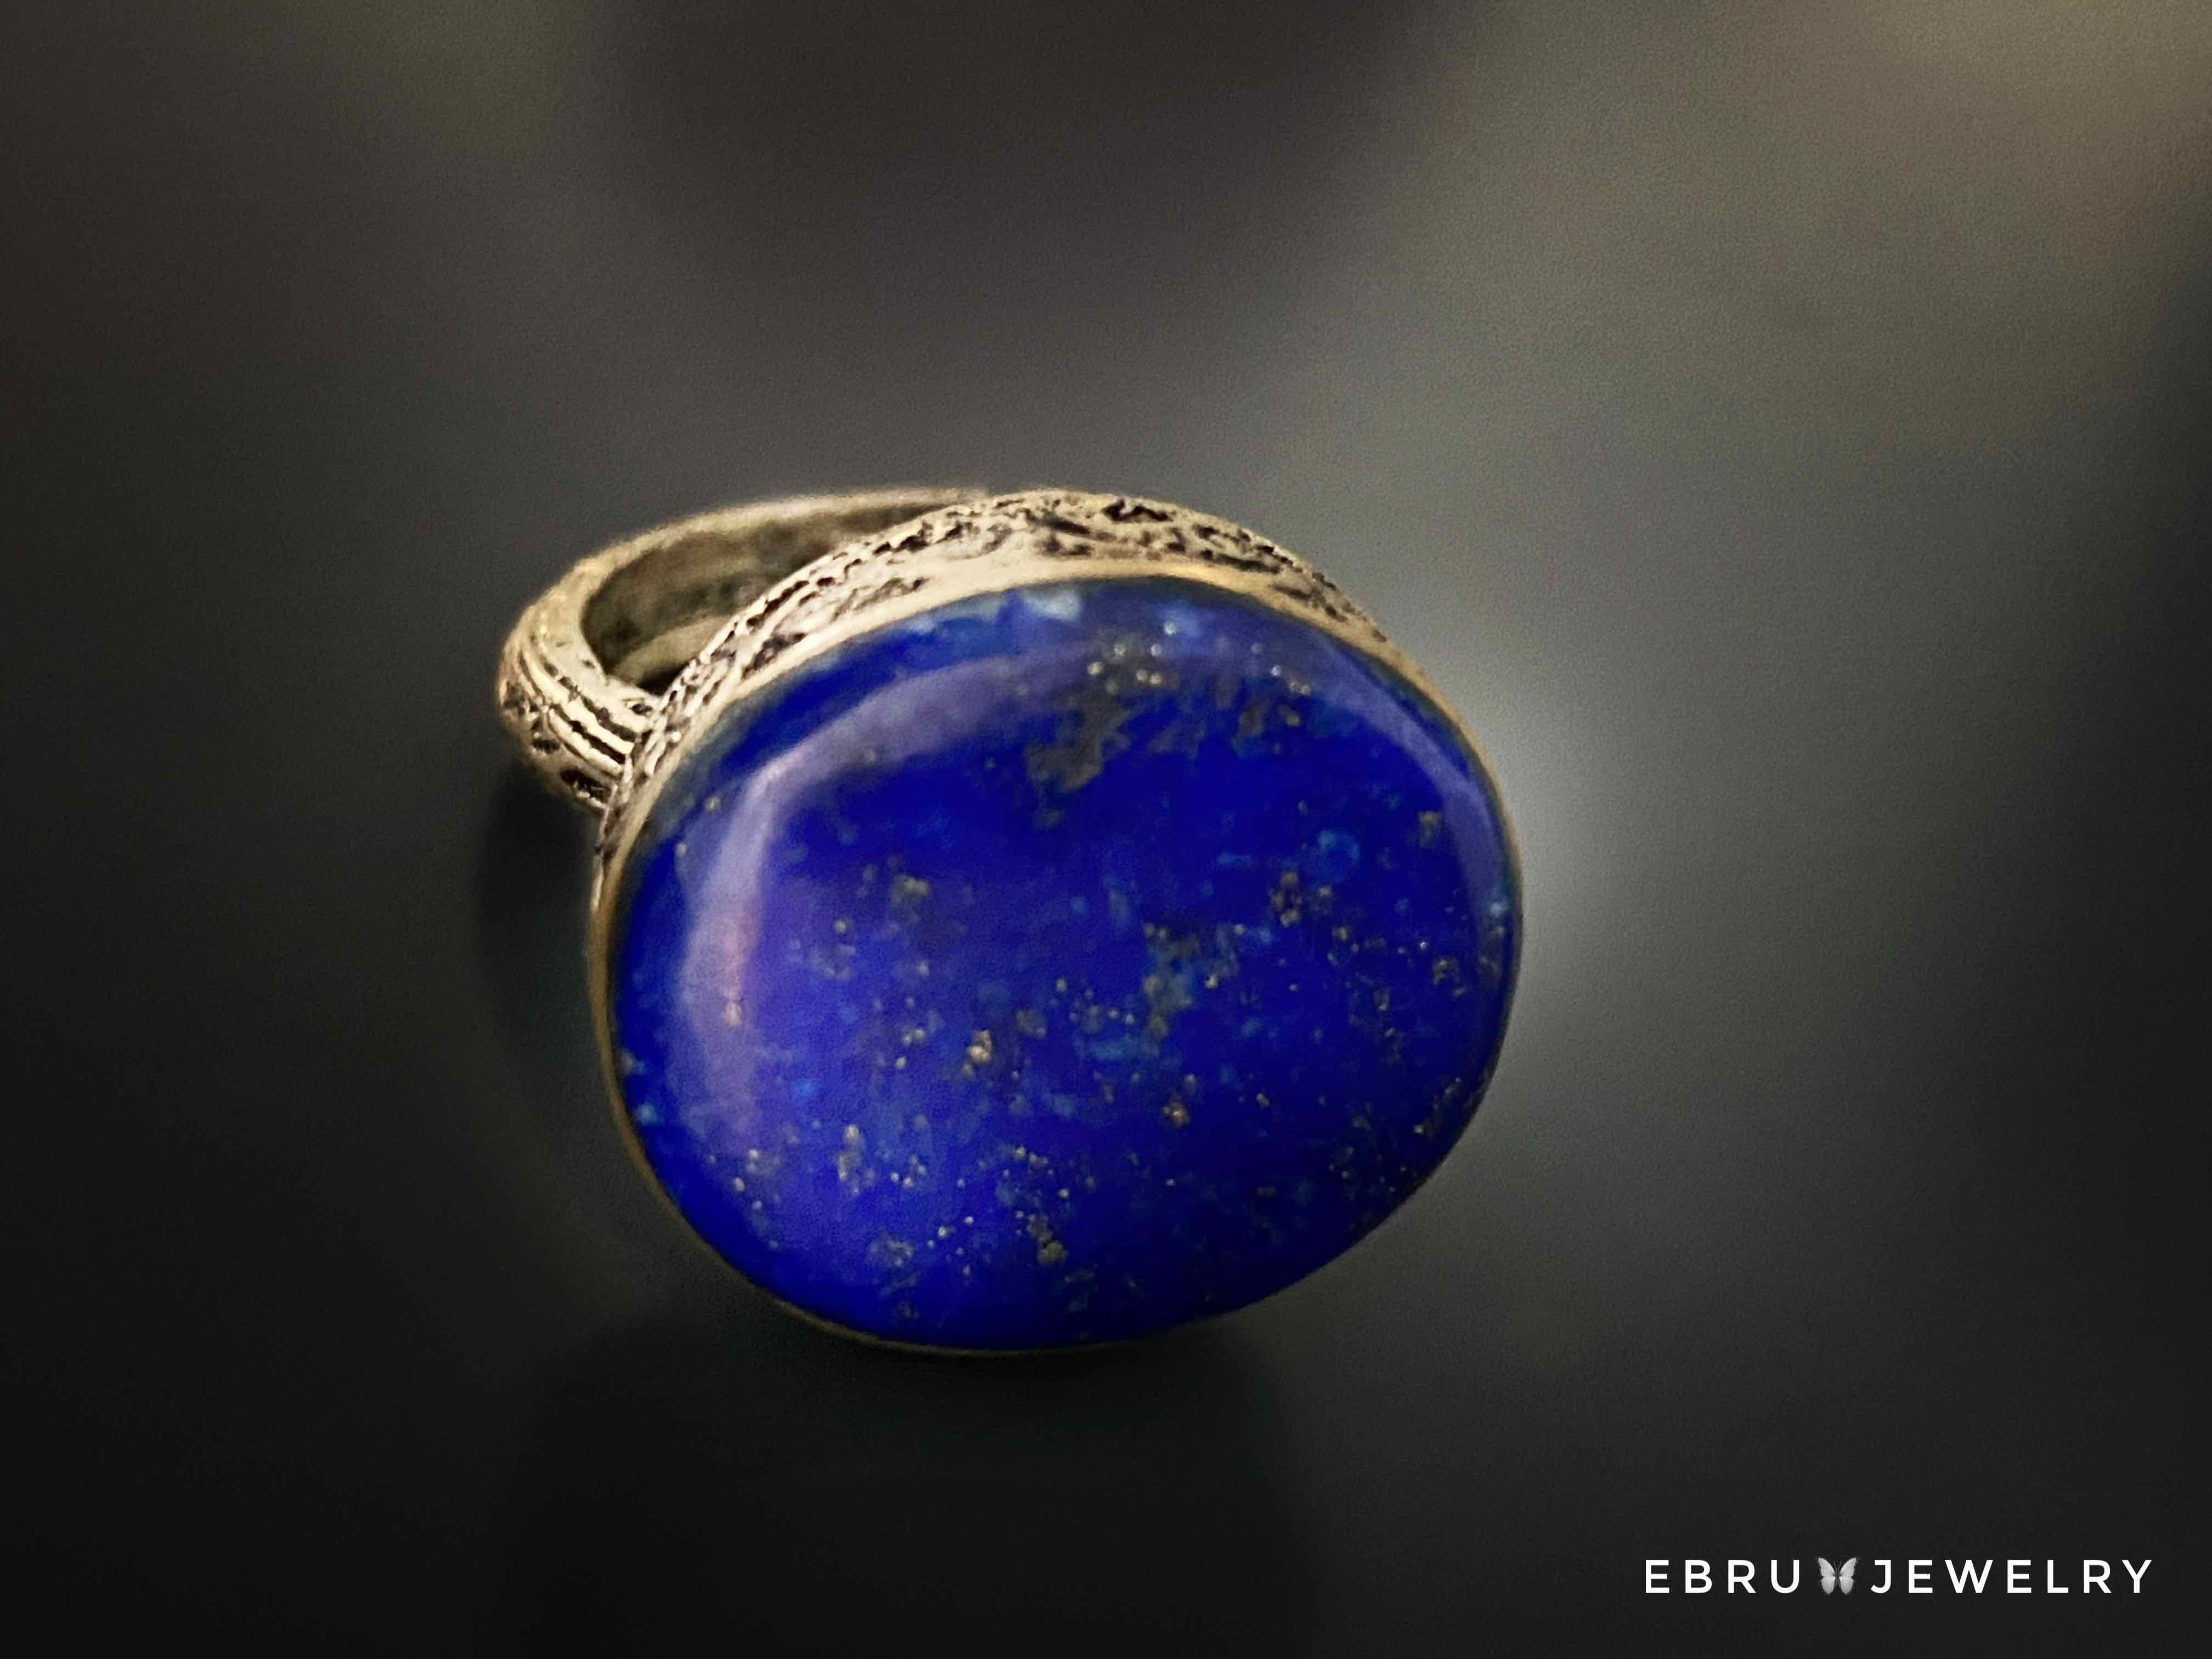 Blue Lapis Lazuli Antique Ring - EBRU JEWELRY